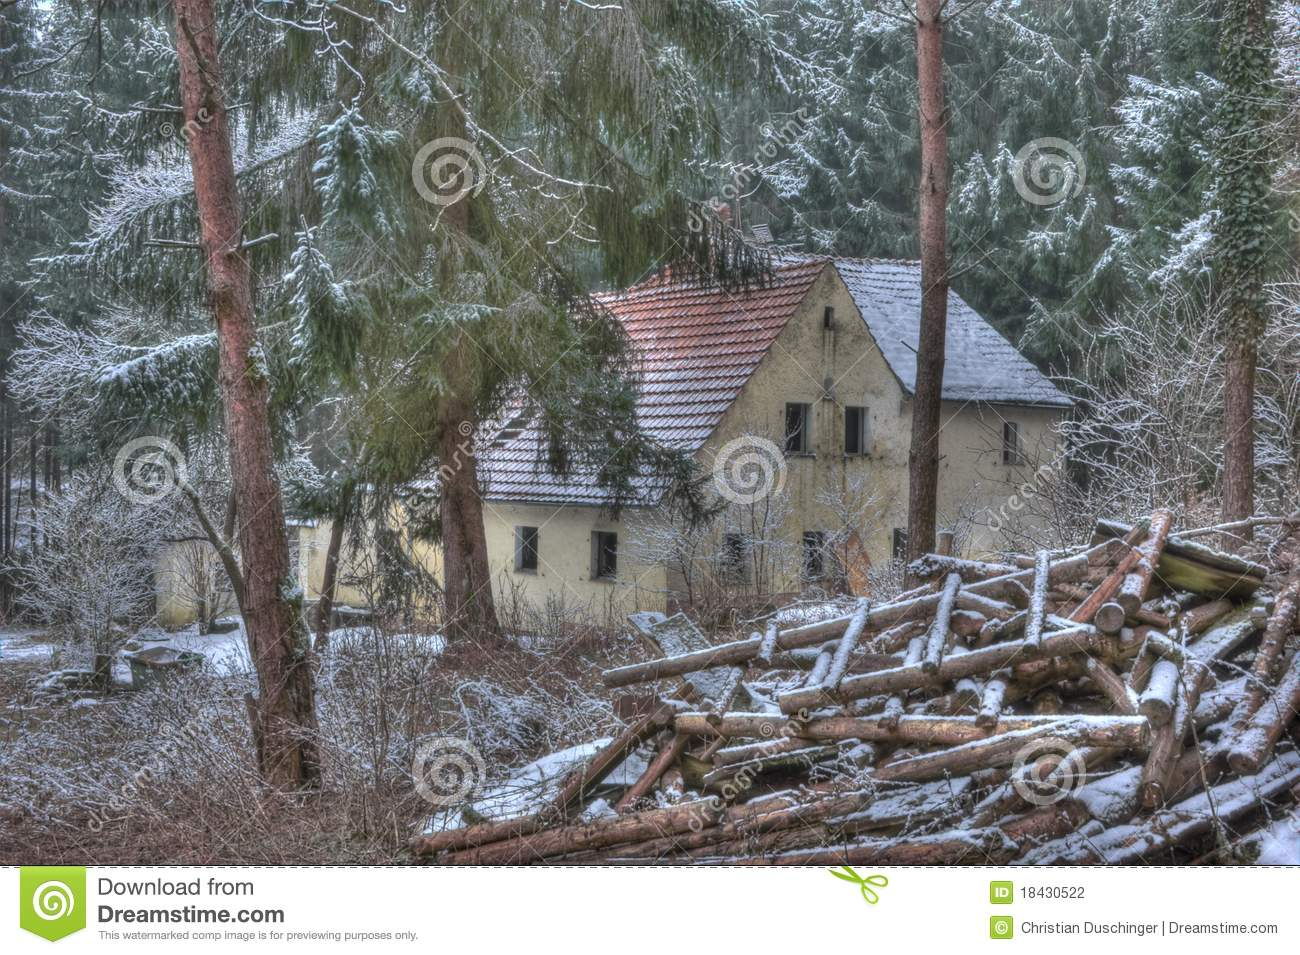 Old house in the middle of the forest stock photography image 18430522 - Amenager een voorgerecht van het huis ...